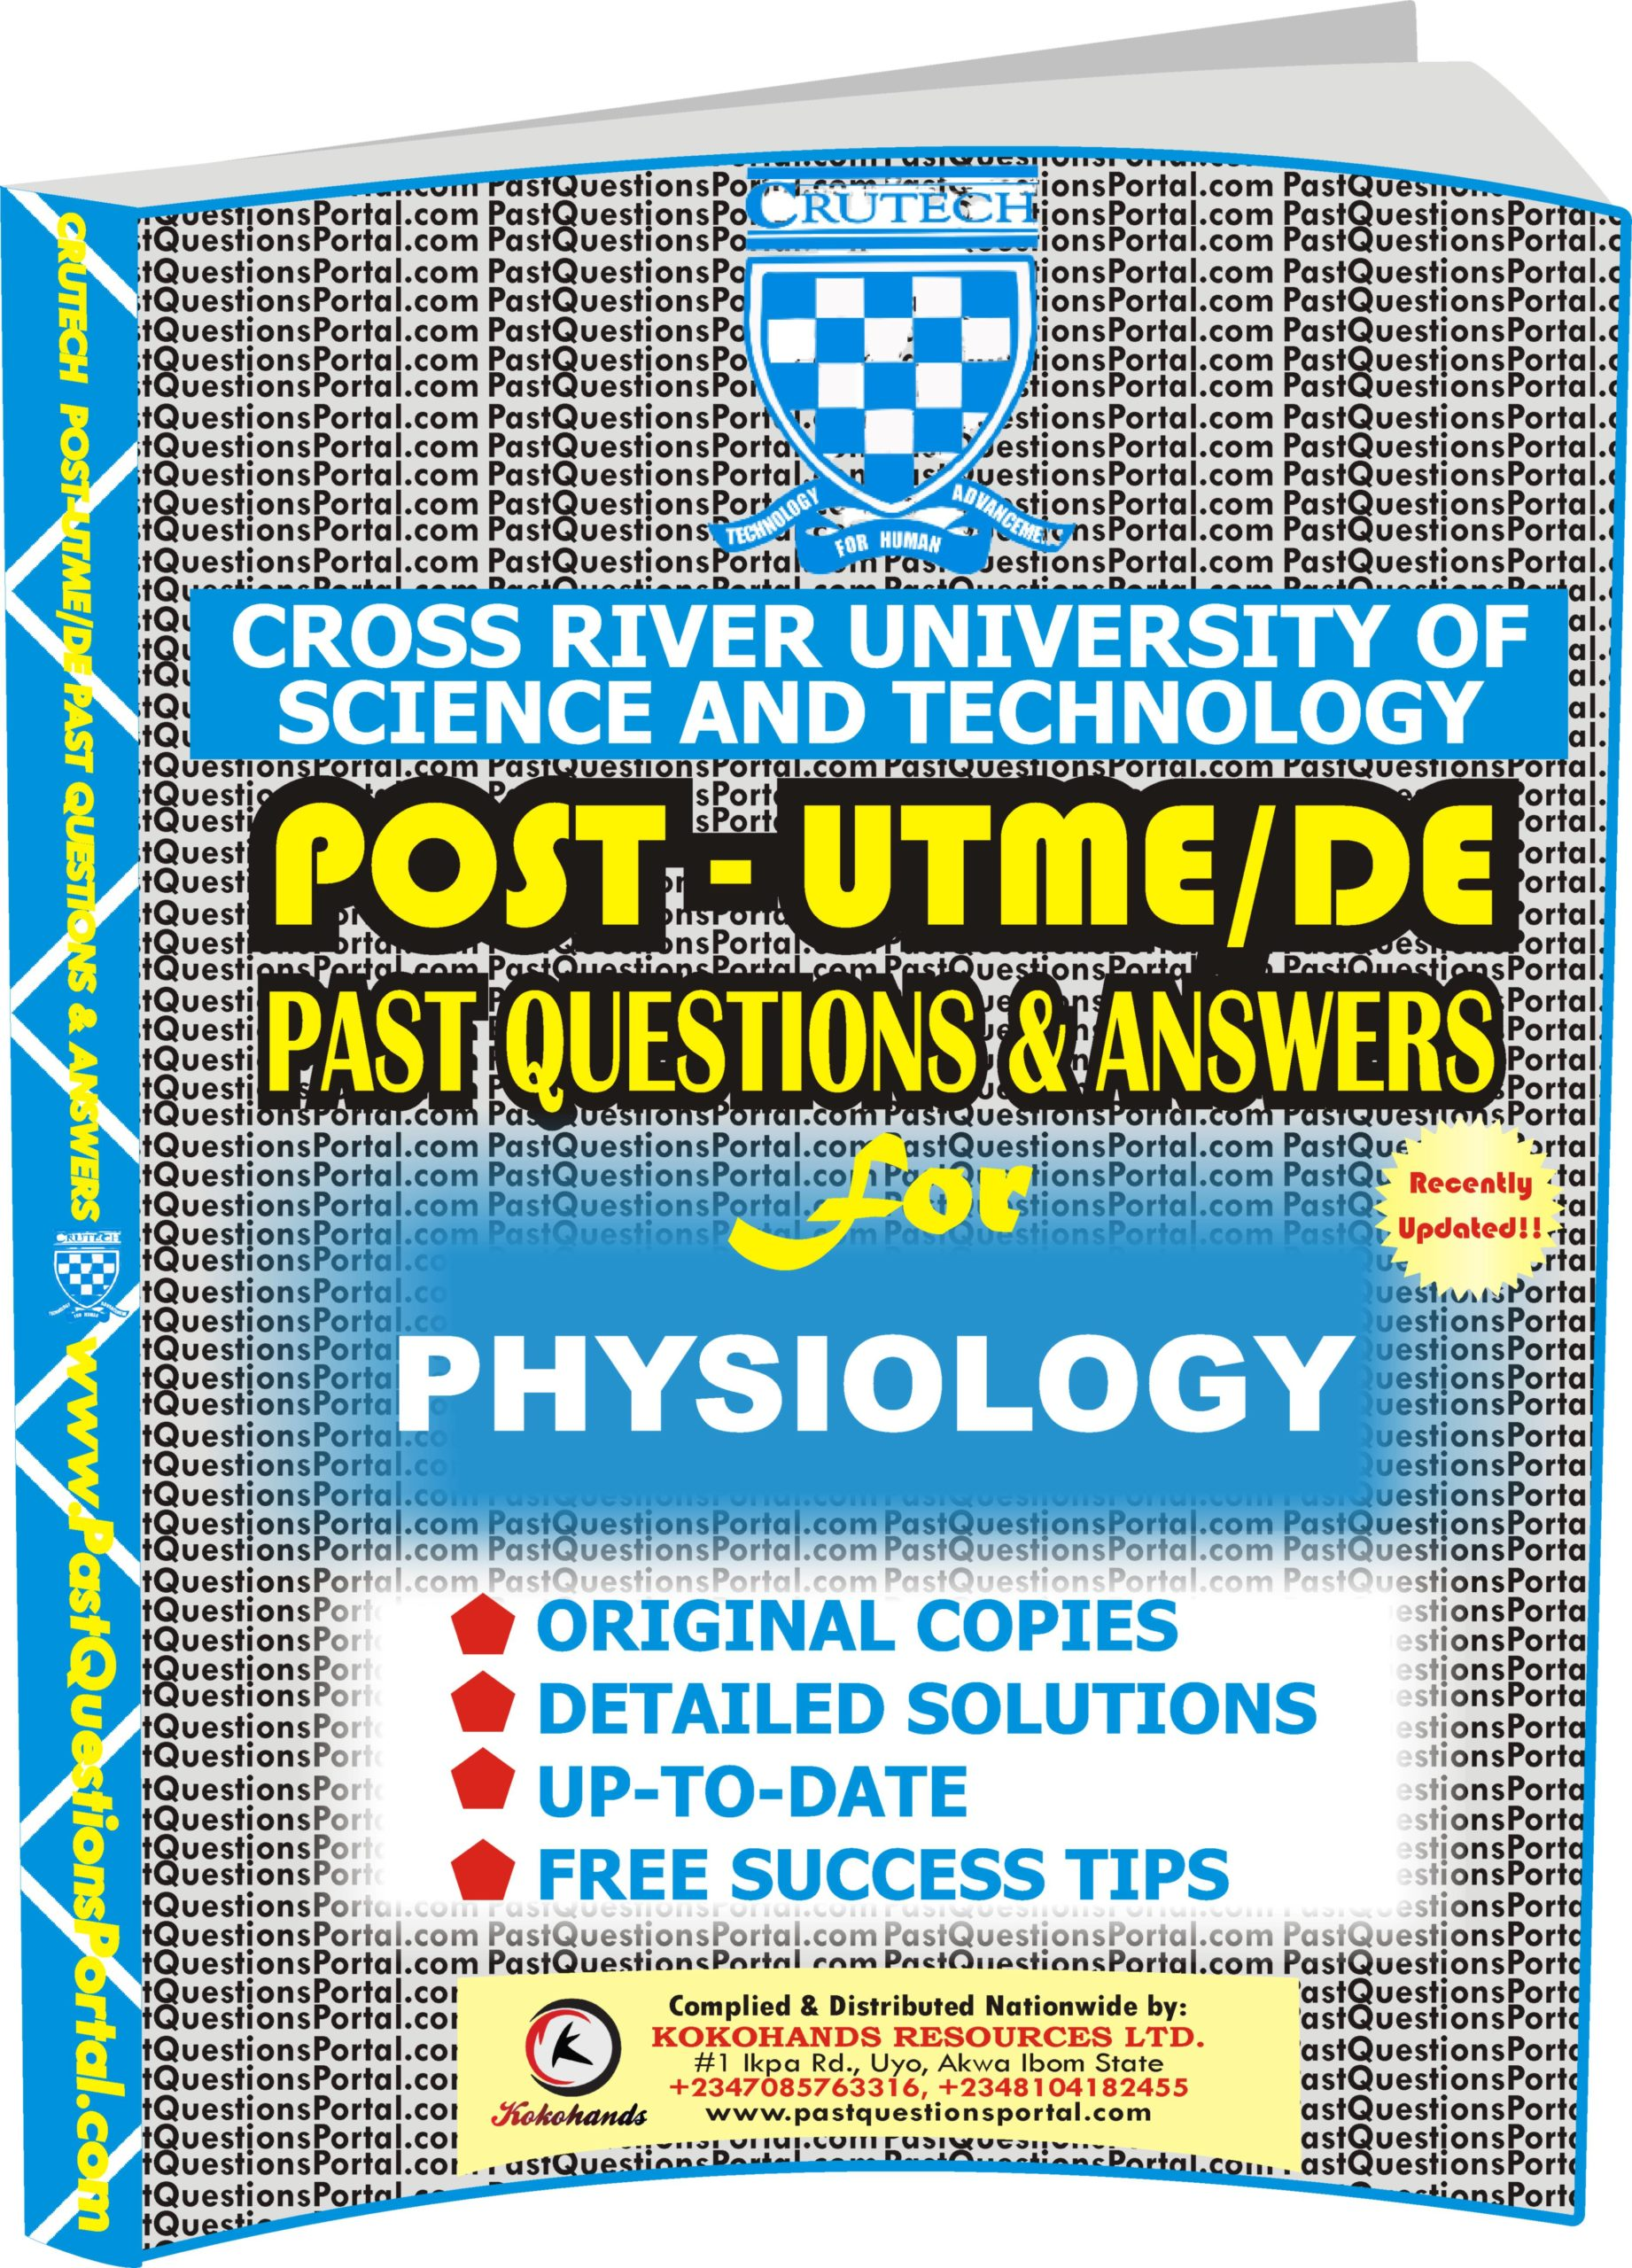 CRUTECH Post UTME Past Questions for PHYSIOLOGY